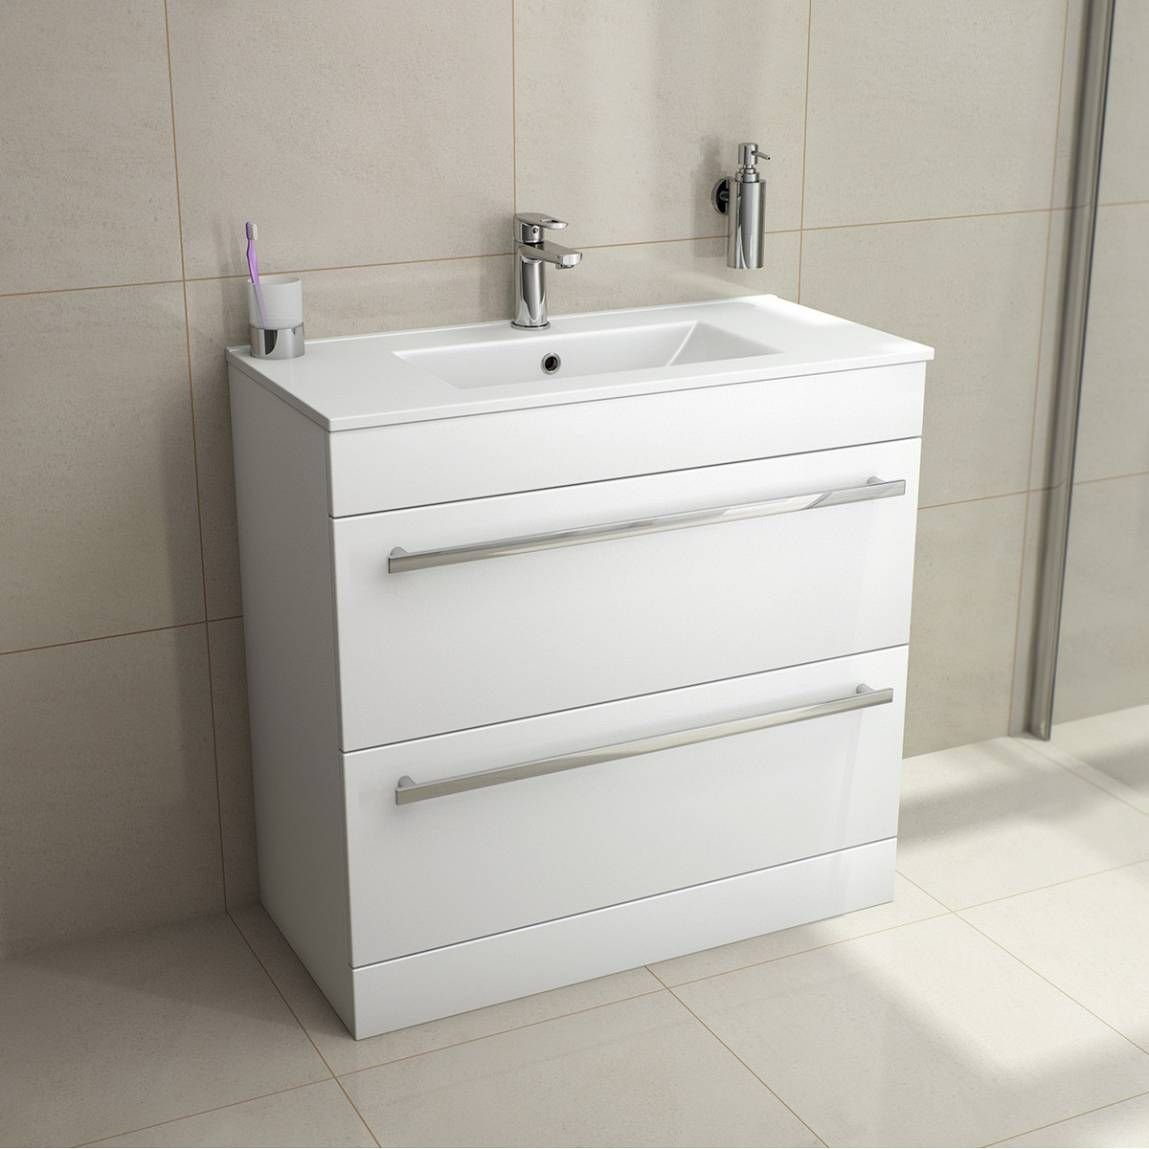 The Odessa White Bathroom Furniture range is fully modular and